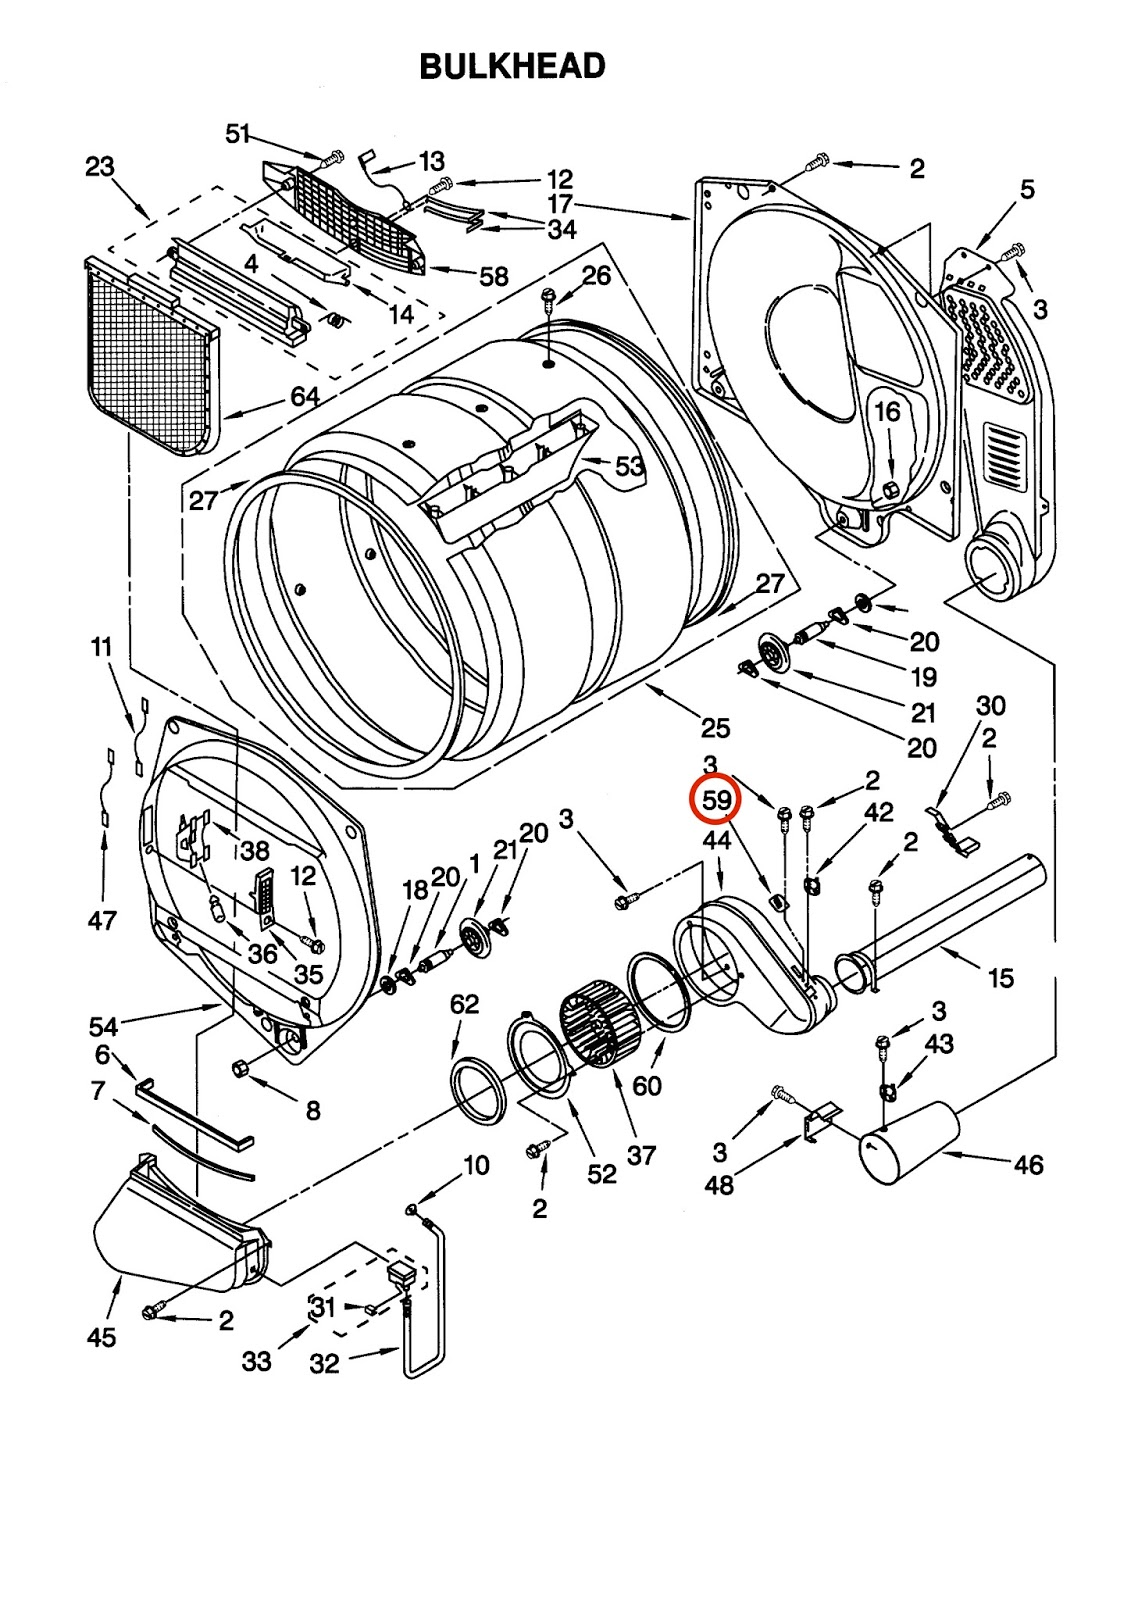 small resolution of part 59 is the thermal fuse click for a larger version